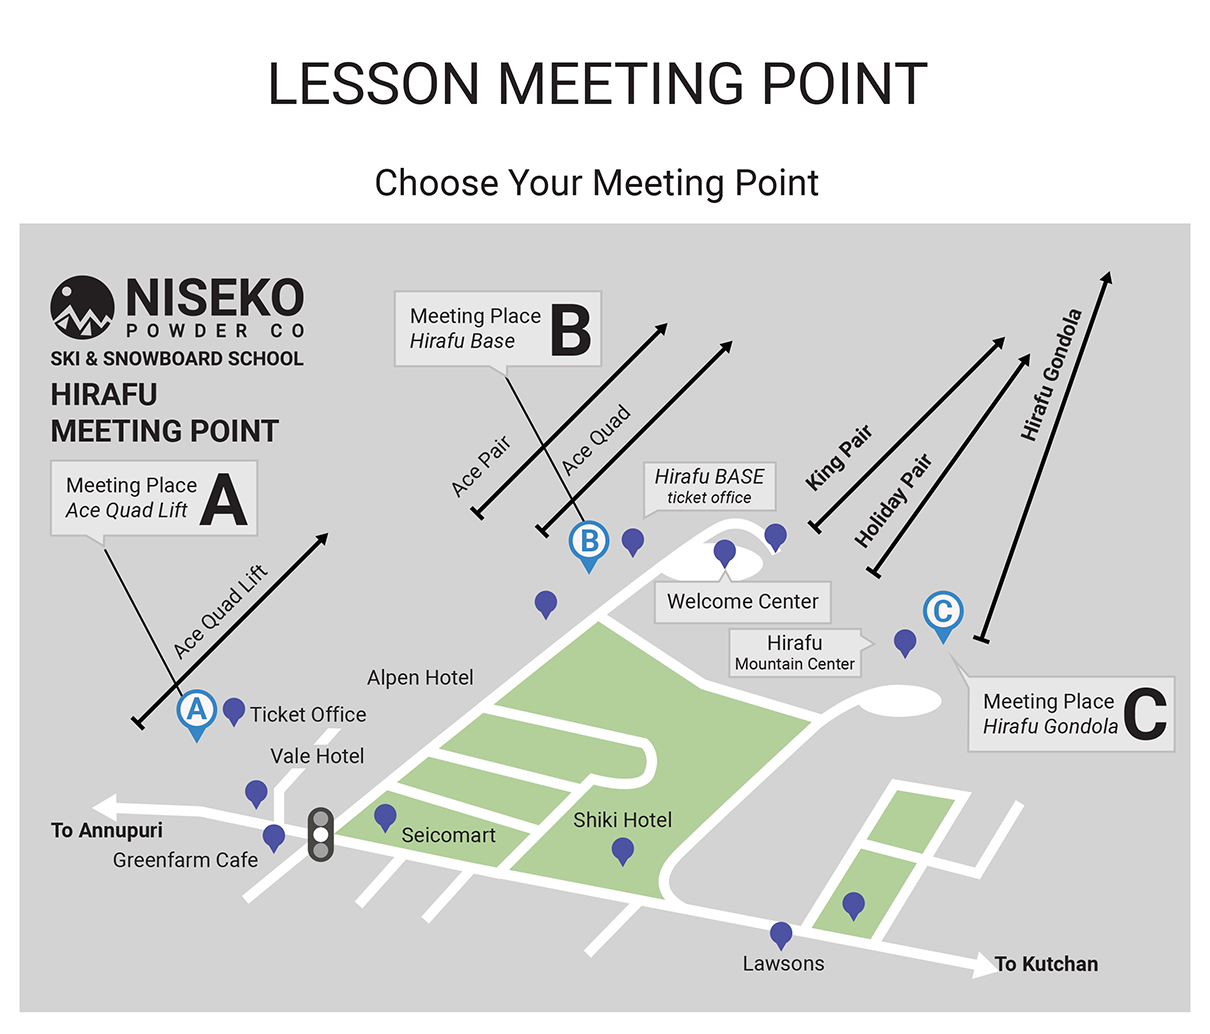 Lesson Meeting Point